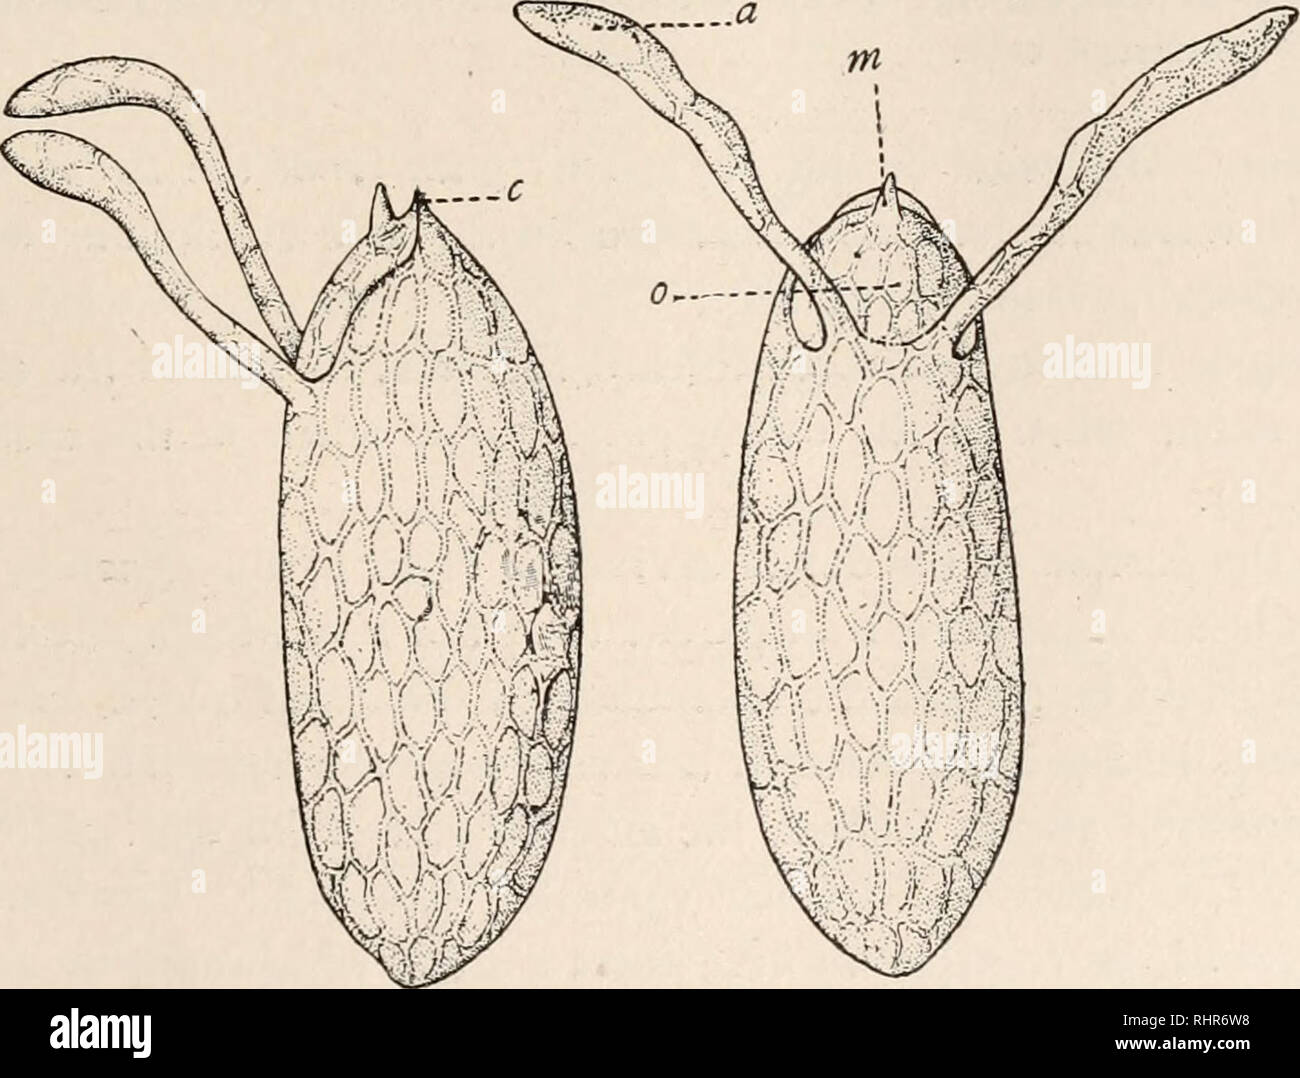 . The Biological bulletin. Biology; Zoology; Biology; Marine Biology. REPRODUCTION IN DROSOPHILA. 219 process is repeated in the spermathecae. Here it is still easier to follow their entrance, for the ducts of these receptacles are very thin and transparent. In no case were spermatozoa observed entering these receptacles before the ventral receptacle was filled with spermatozoa. This might be explained by the position of the orifice leading to the latter, which, as already stated, is placed a little posterior to the openings of the spermathecse, and per- haps also by the partial closure of the Stock Photo